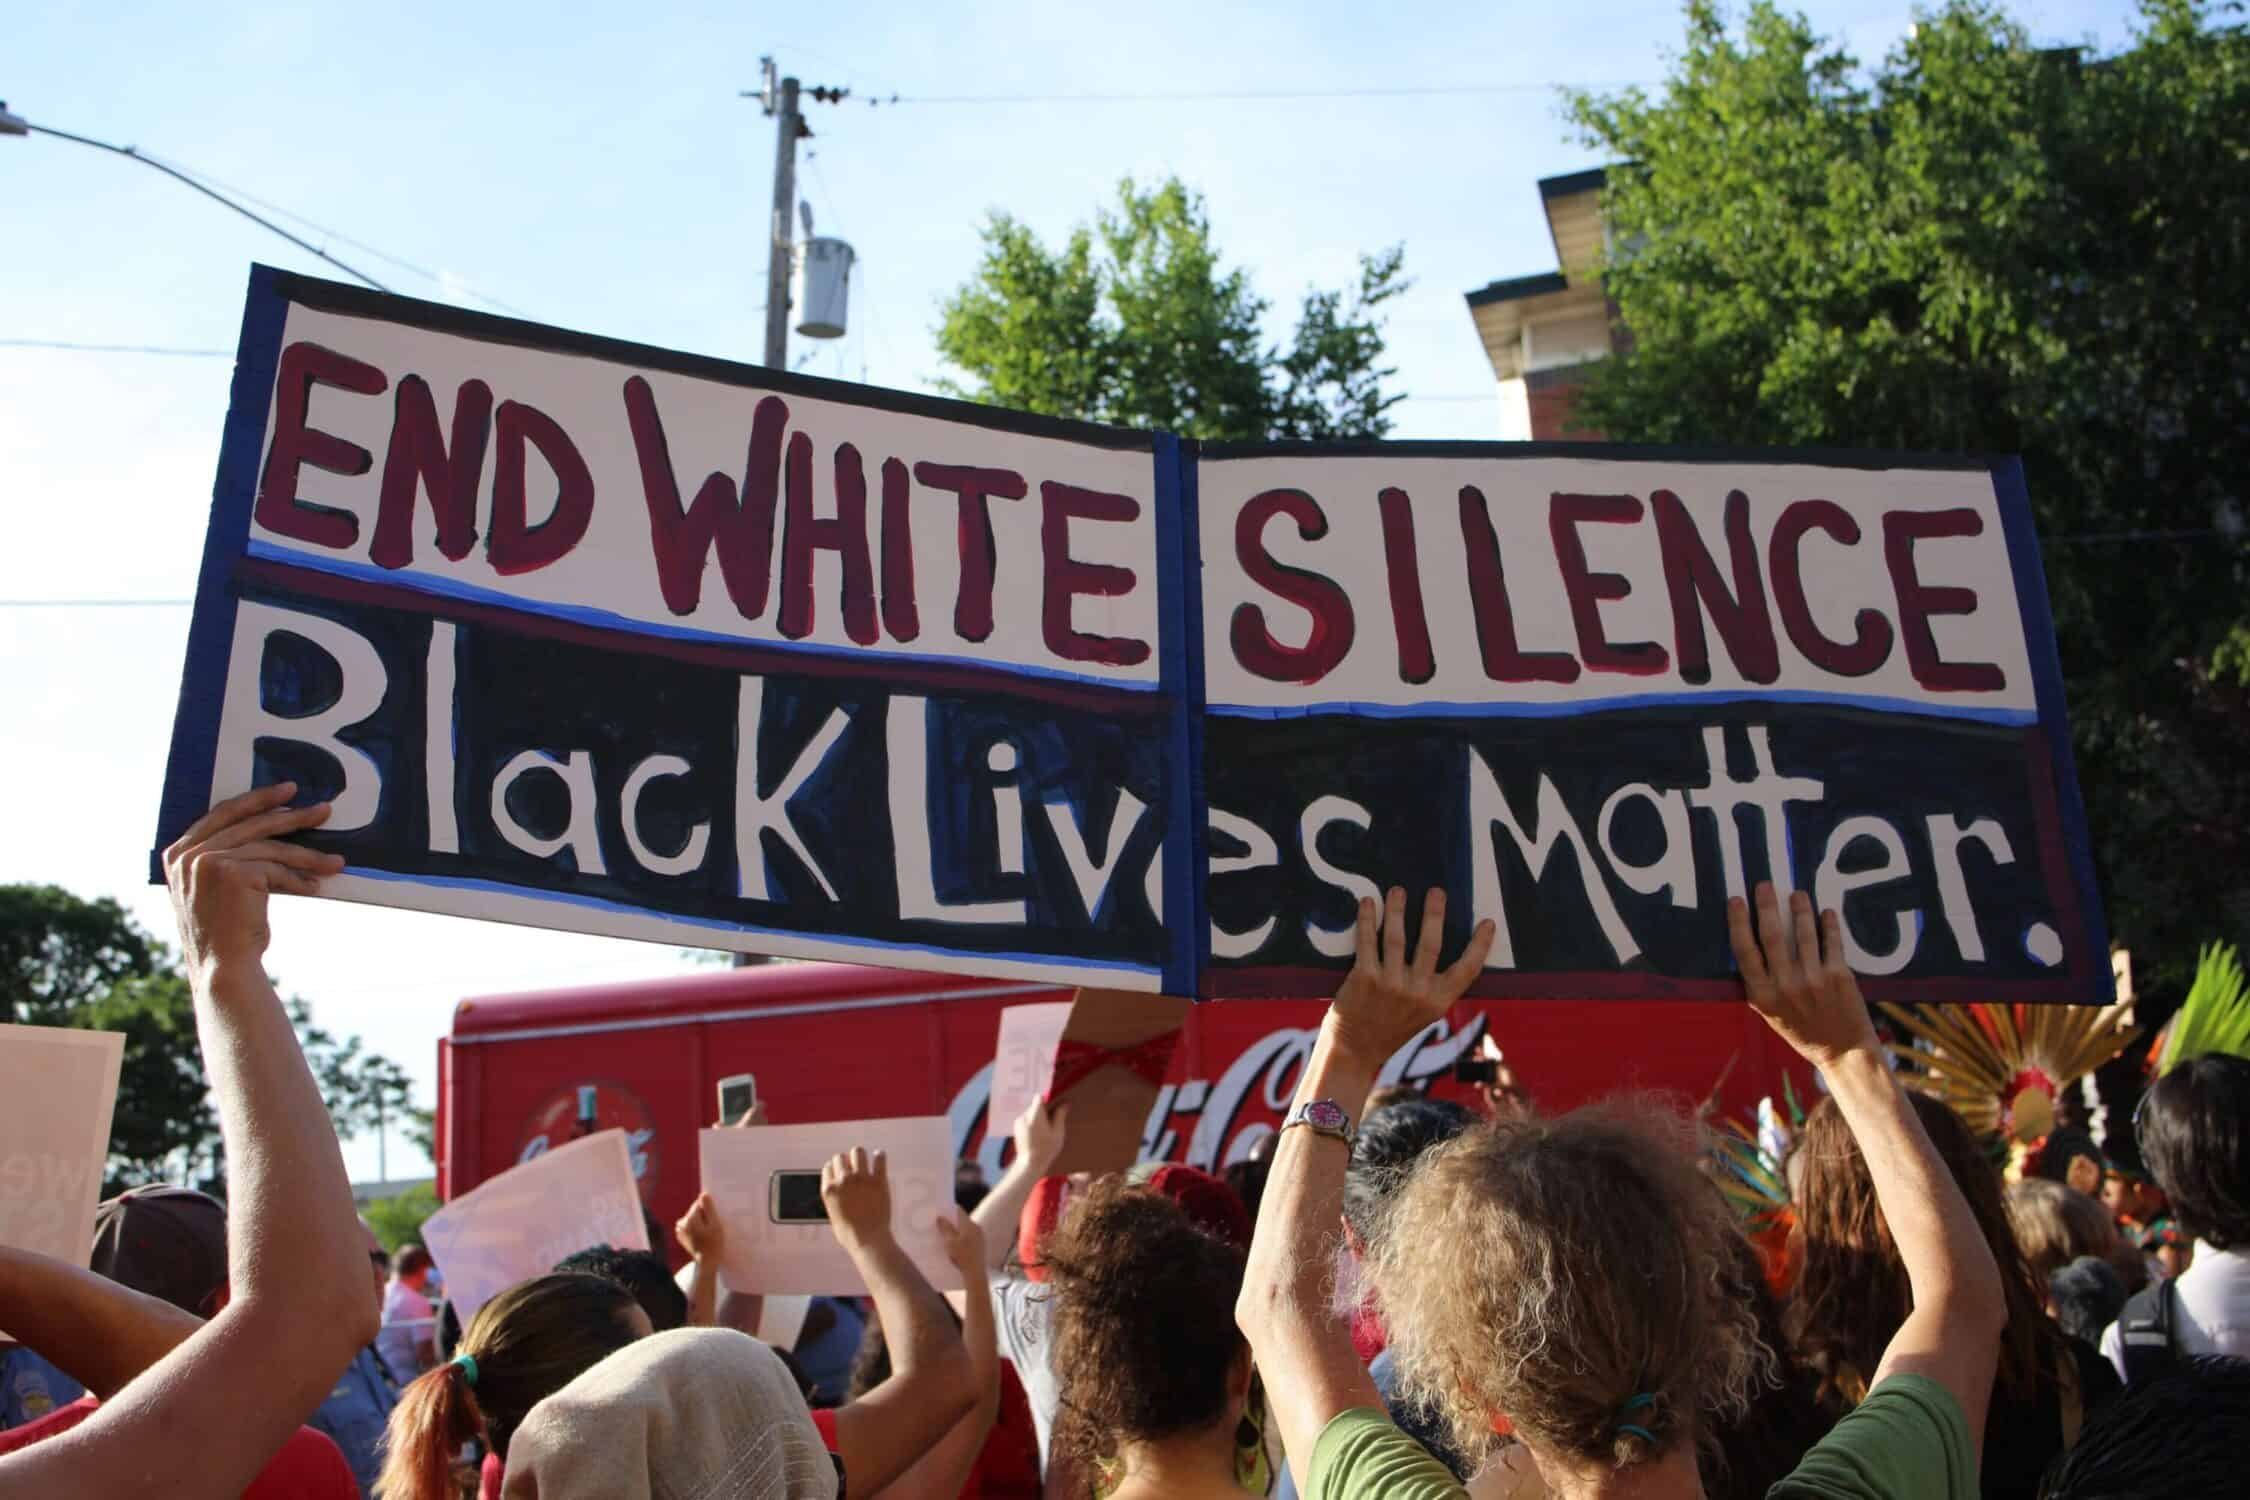 Protesters outside holding a blue, red, white and black sign that reads 'END WHITE SILENCE Black Lives Matter' at the Minneapolis protests.